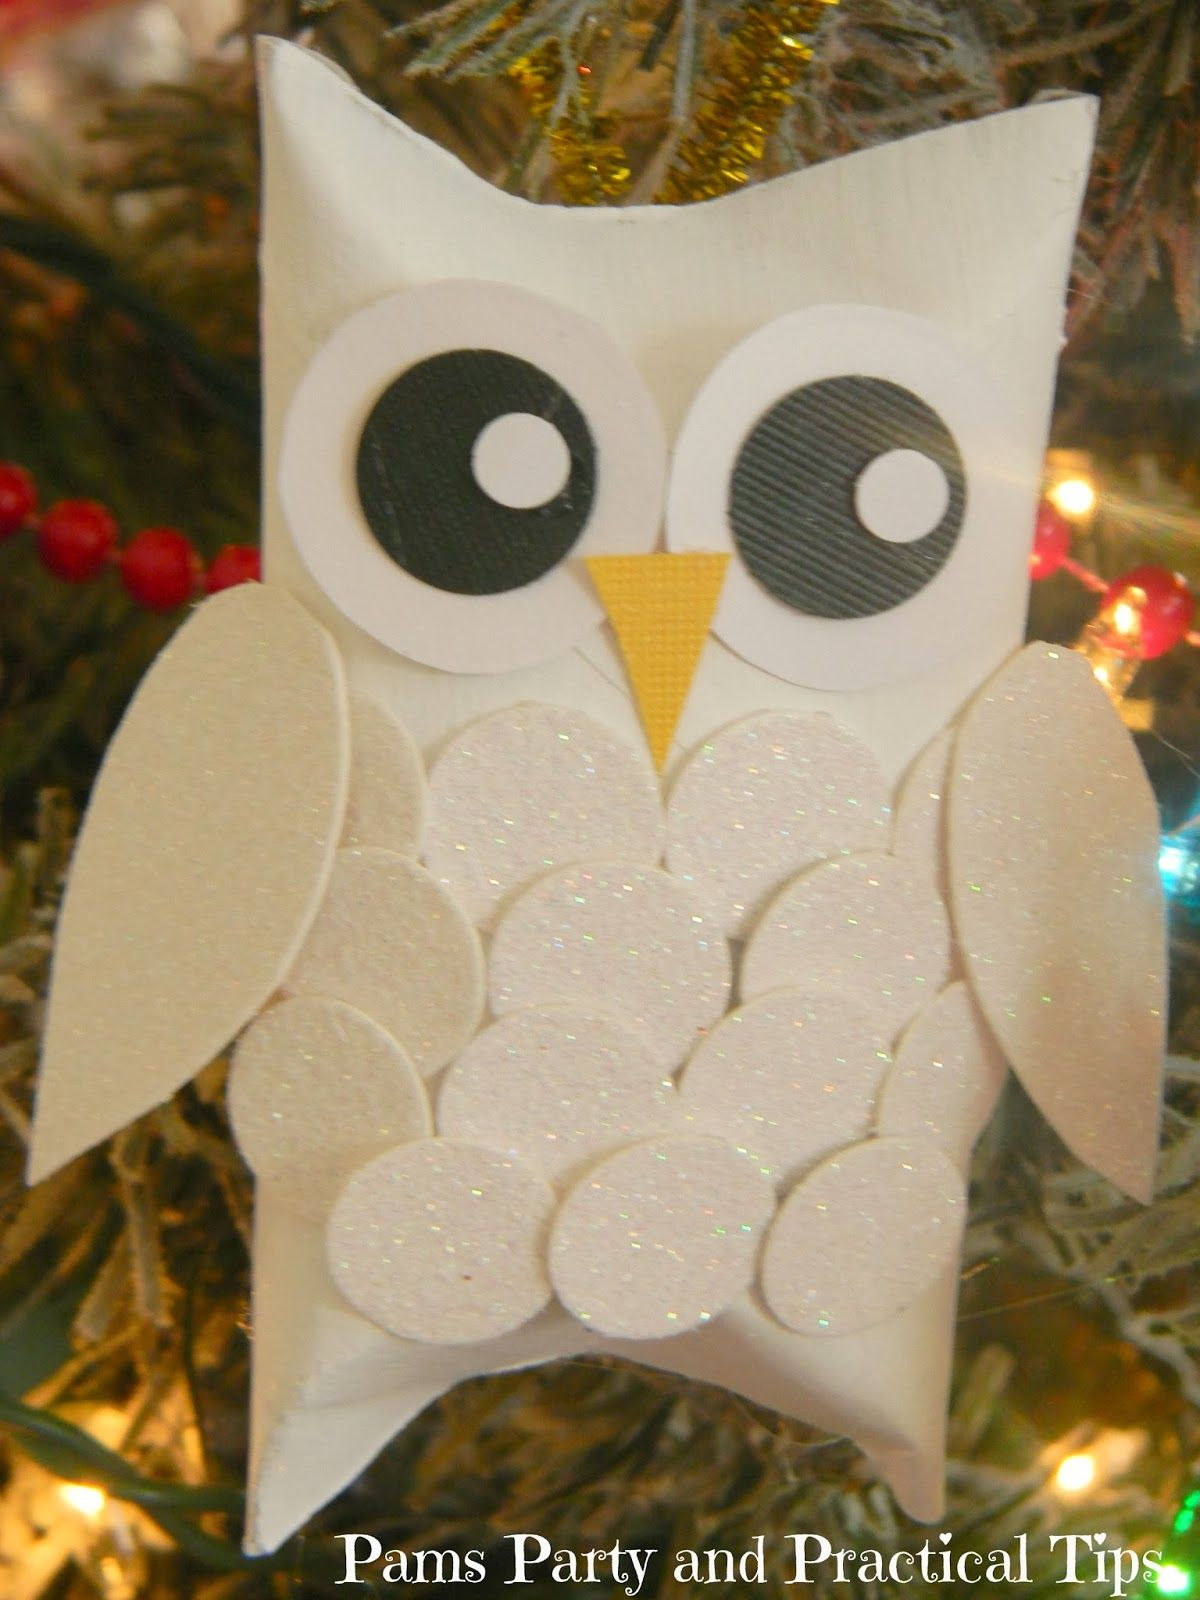 Pams Party & Practical Tips: Snow Owl Ornaments